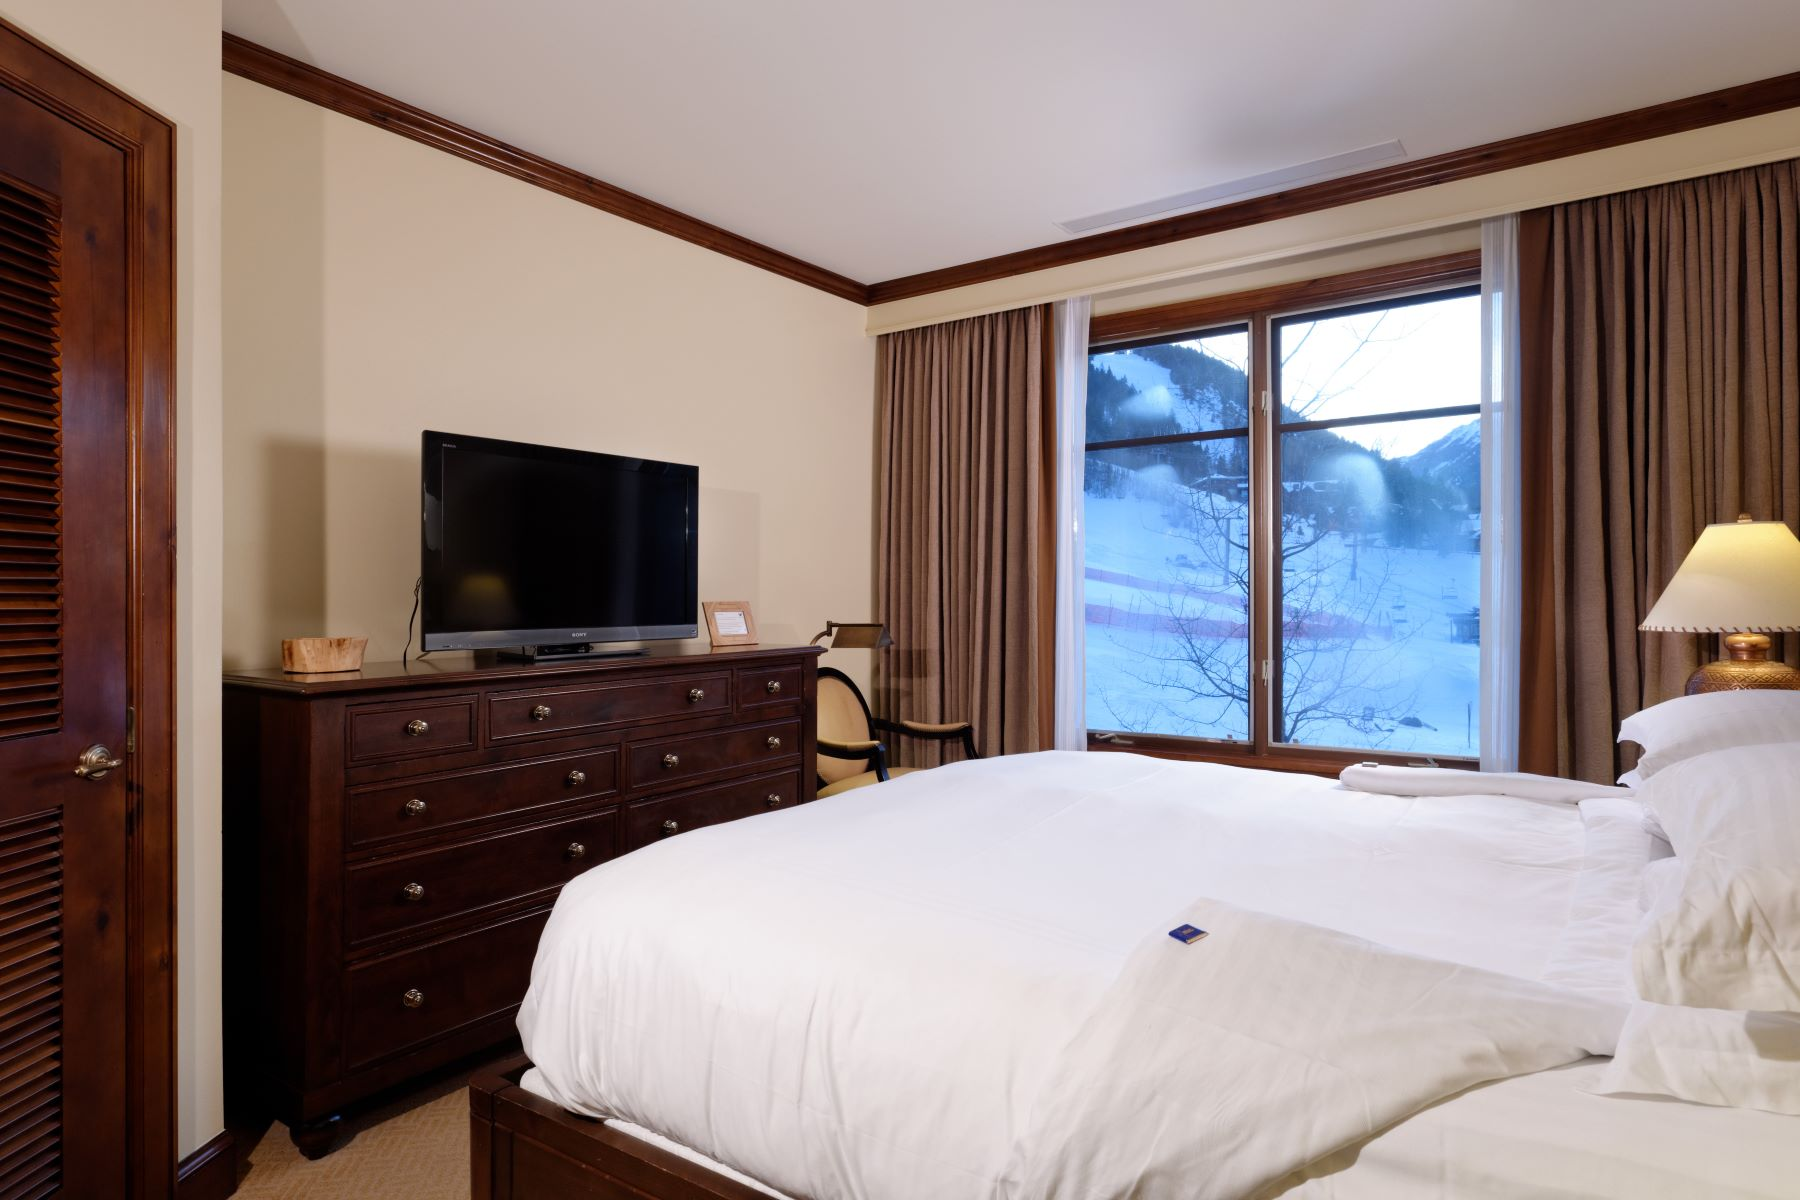 Additional photo for property listing at Fractional Ownership at the Ritz Carlton, Unit 2302, Winter Interest 9 0197 Prospector Road, Unit 2302, Winter Interest #9 Unit TA 2302 Aspen, Colorado 81611 United States